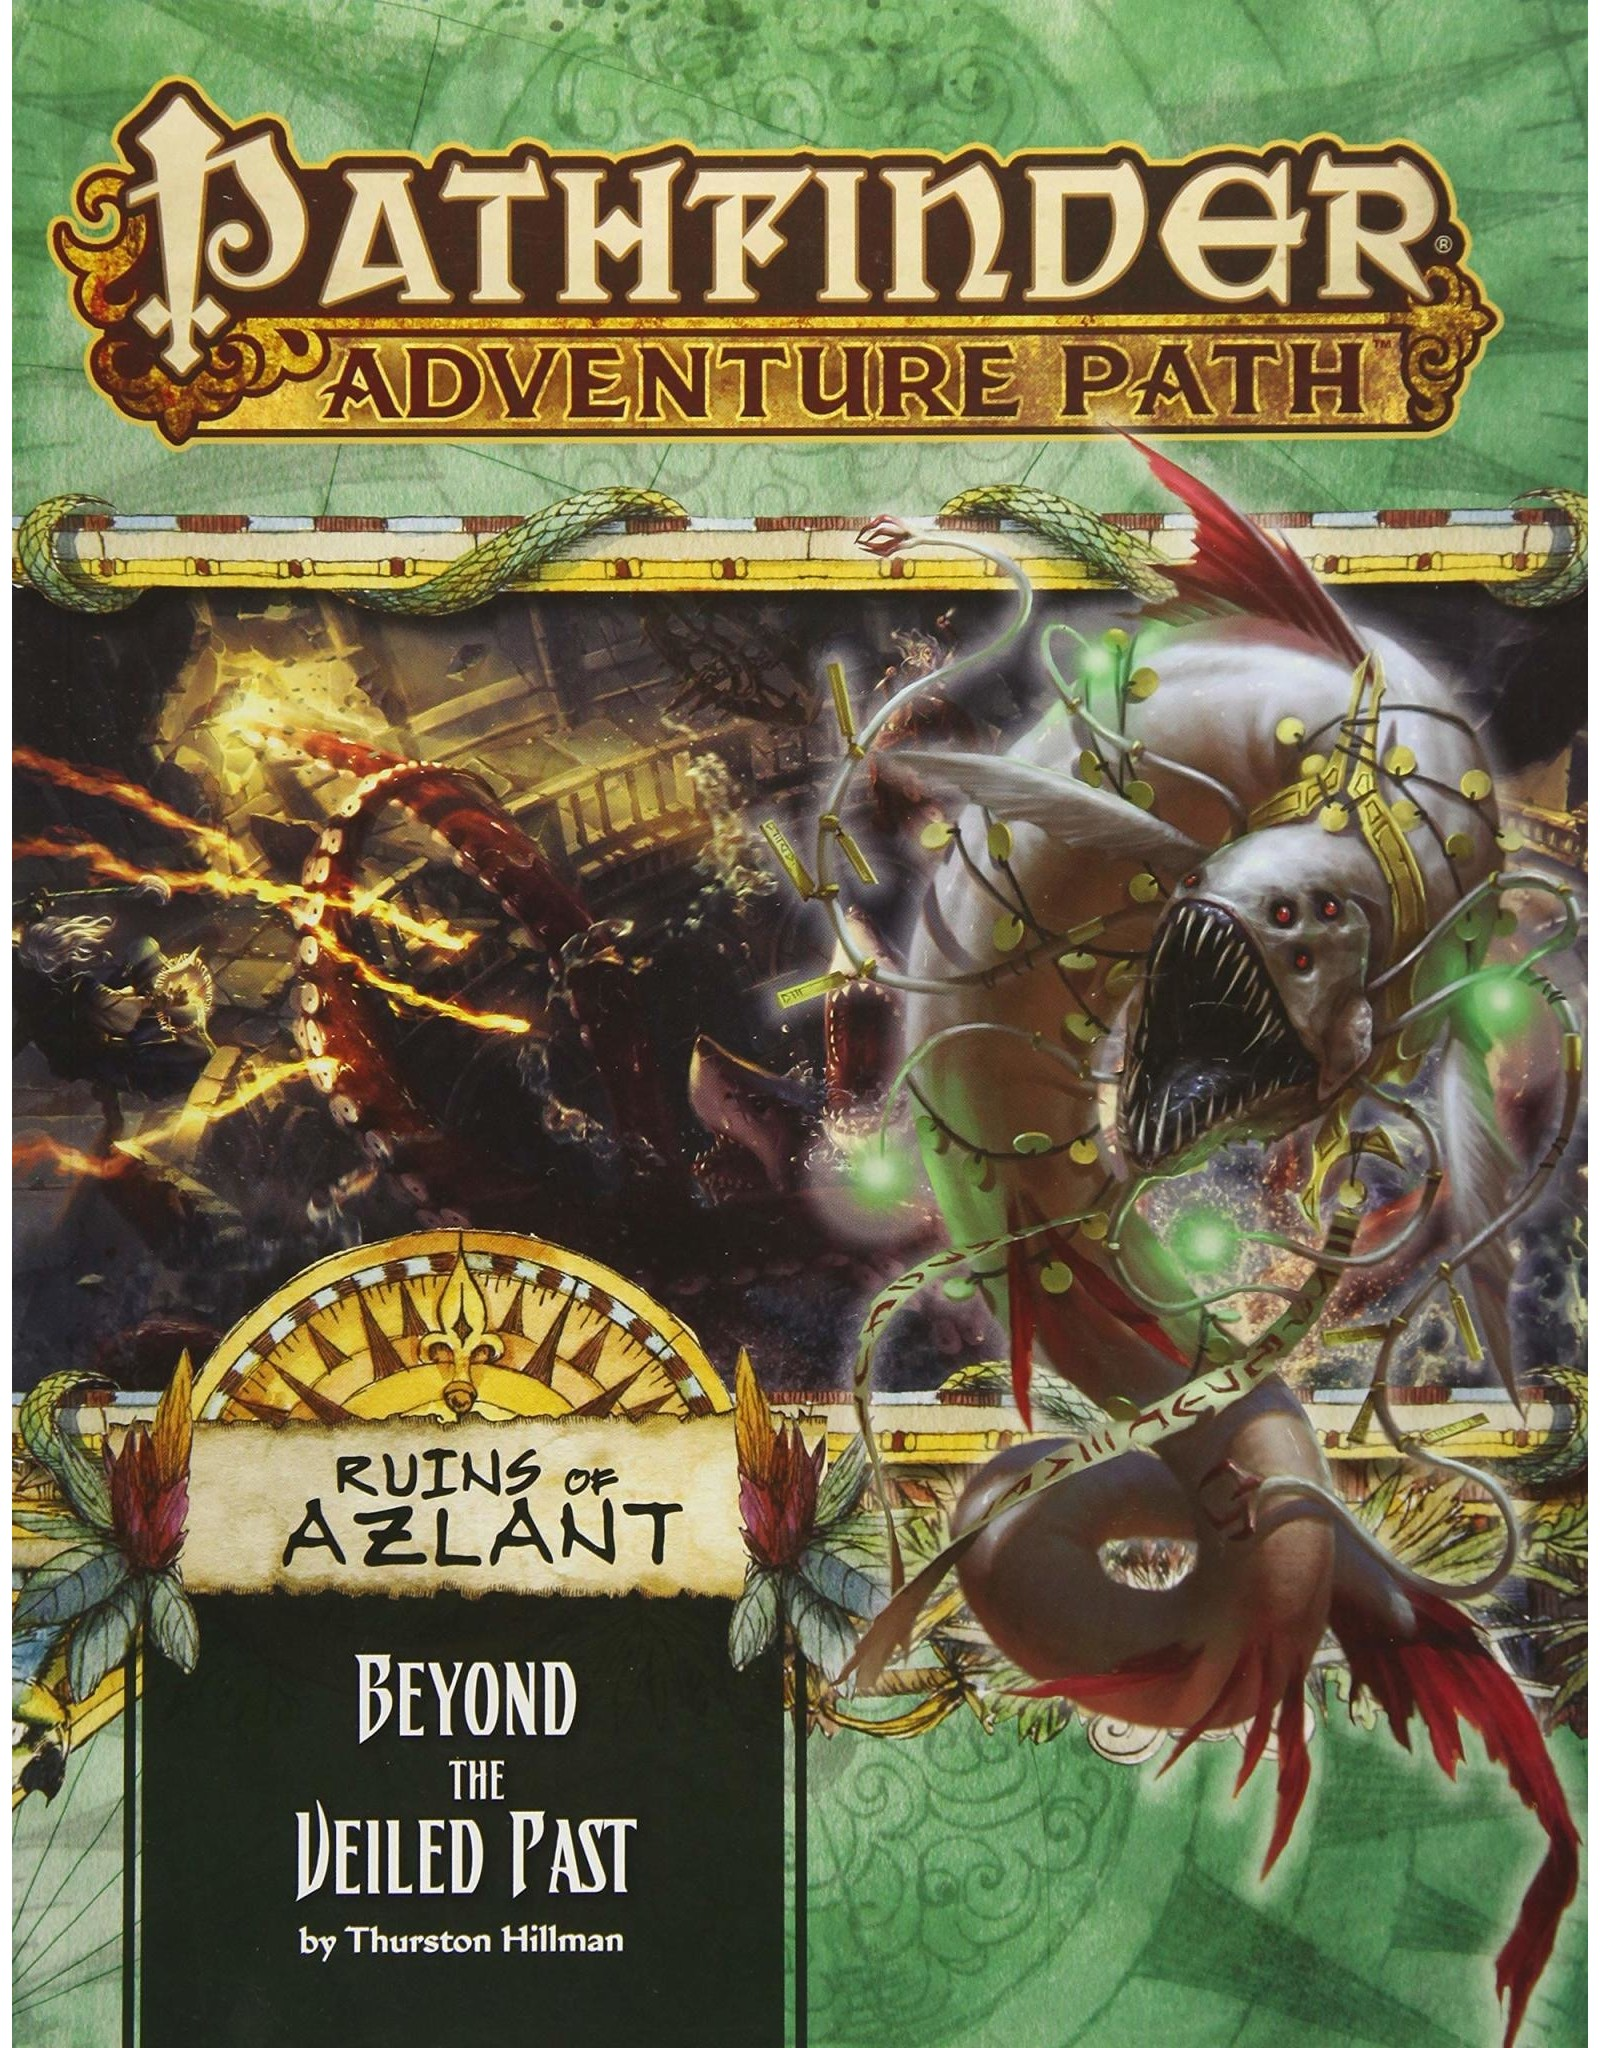 Pathfinder Adventure Path: Ruins of Azlant 5 Beyond the Veiled Past